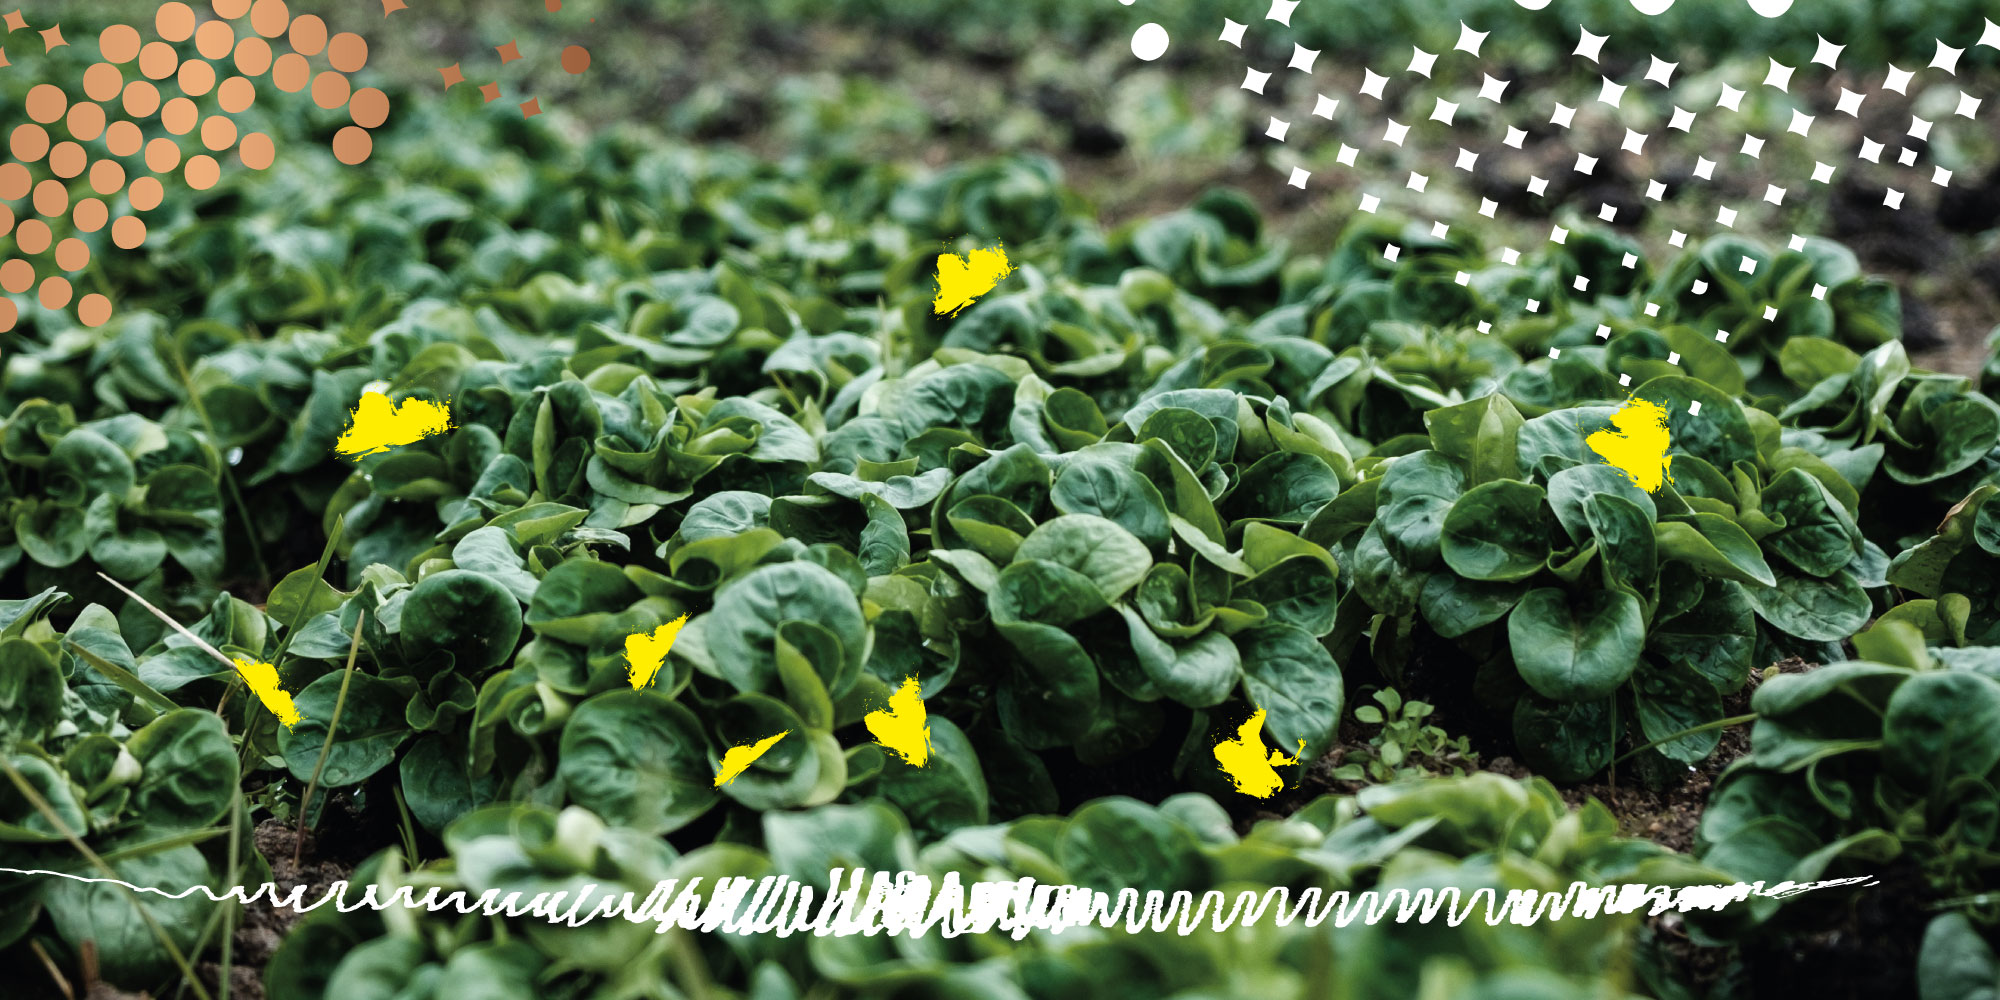 Green leafy looking vegetables like spinach with illustrative halftone and butterflies overlay